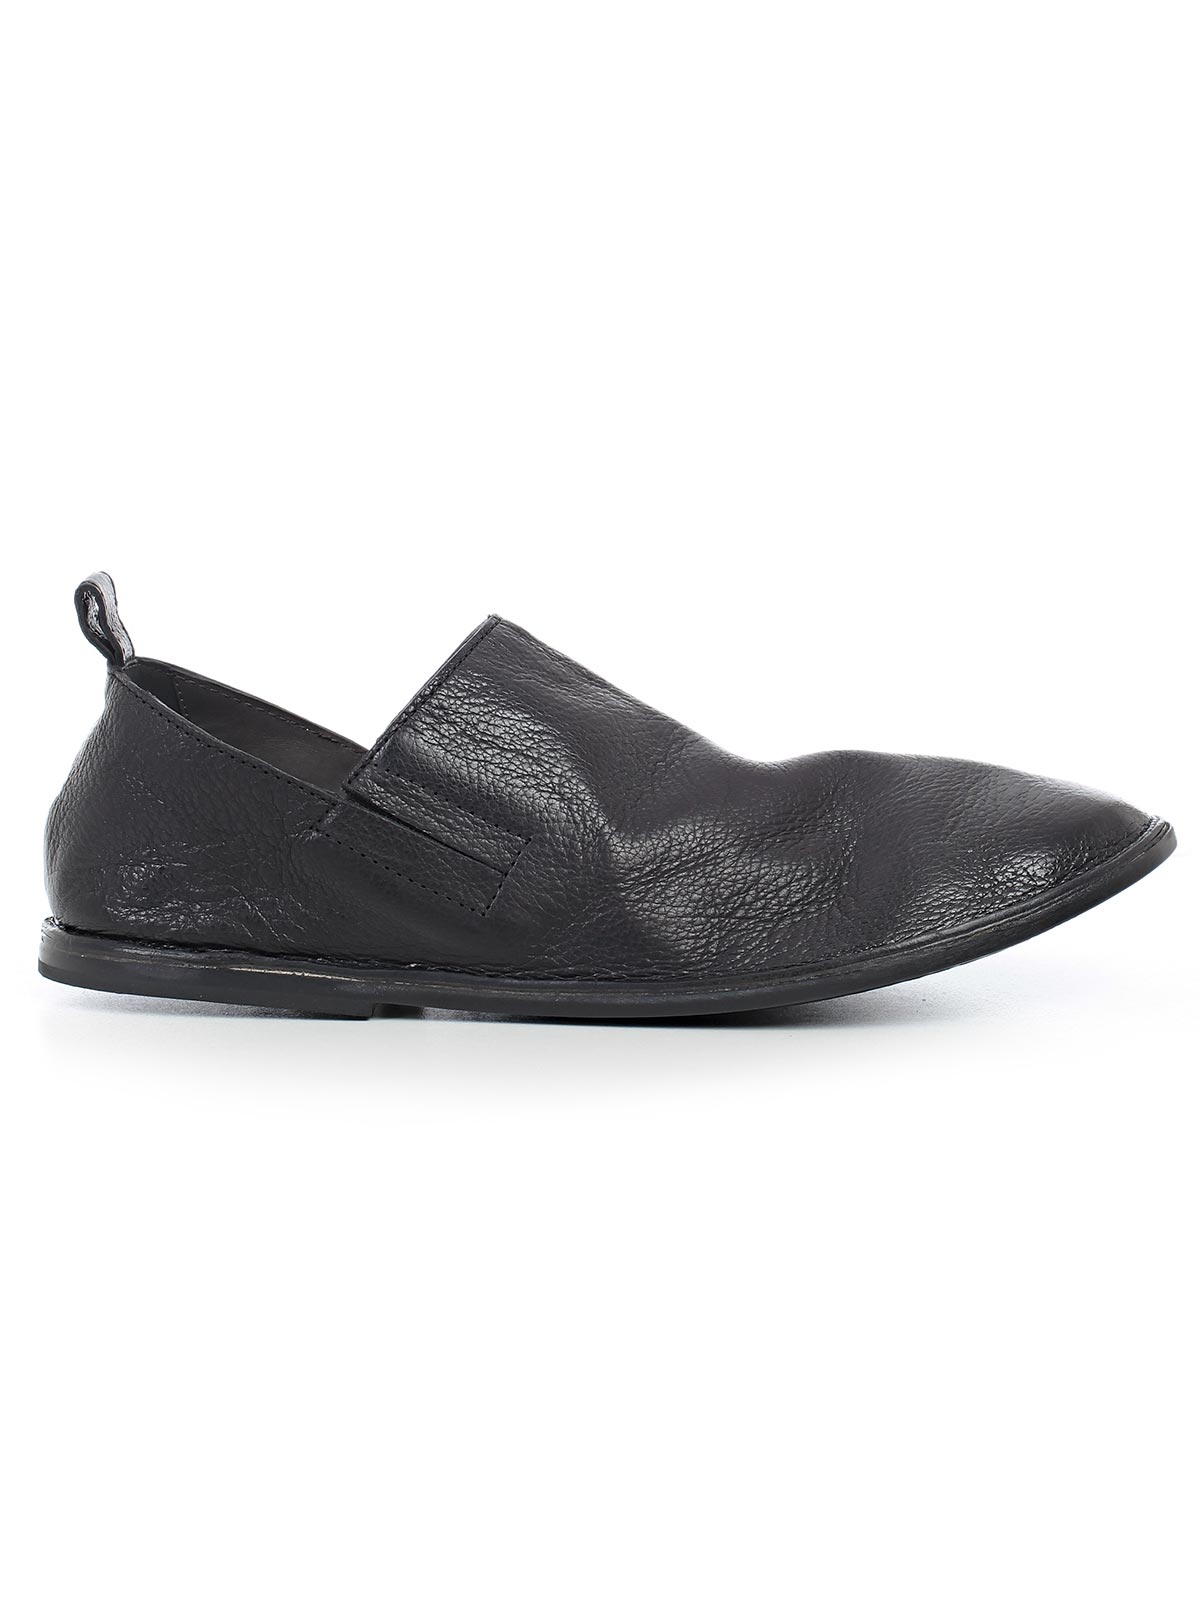 Picture of MARSELL Sandals